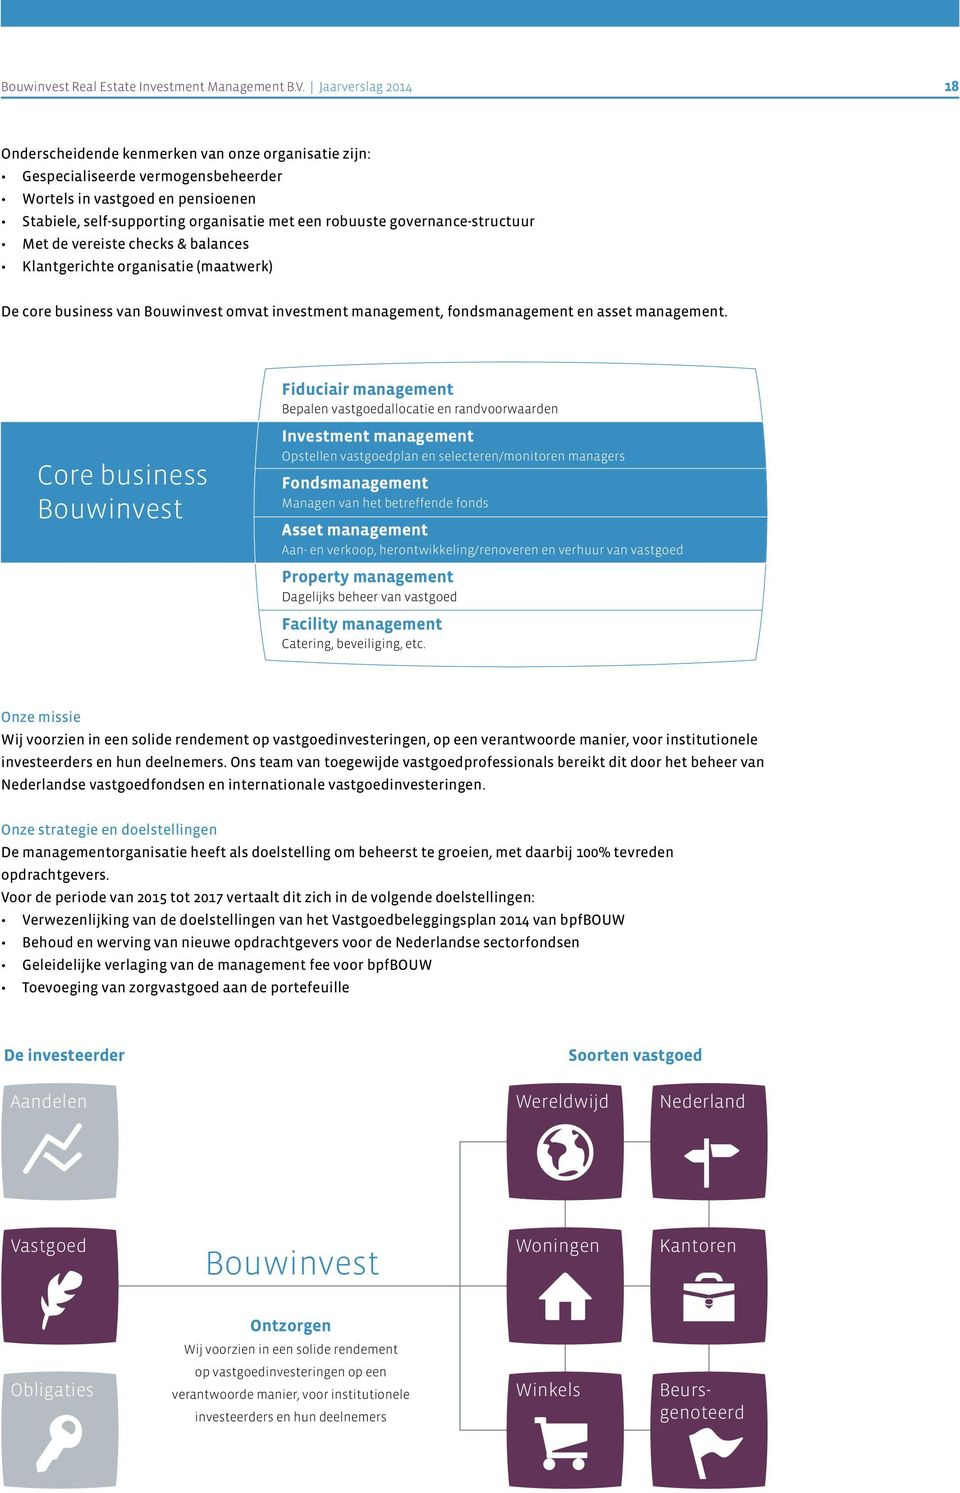 governance-structuur Met de vereiste checks & balances Klantgerichte organisatie (maatwerk) De core business van Bouwinvest omvat investment management, fondsmanagement en asset management.